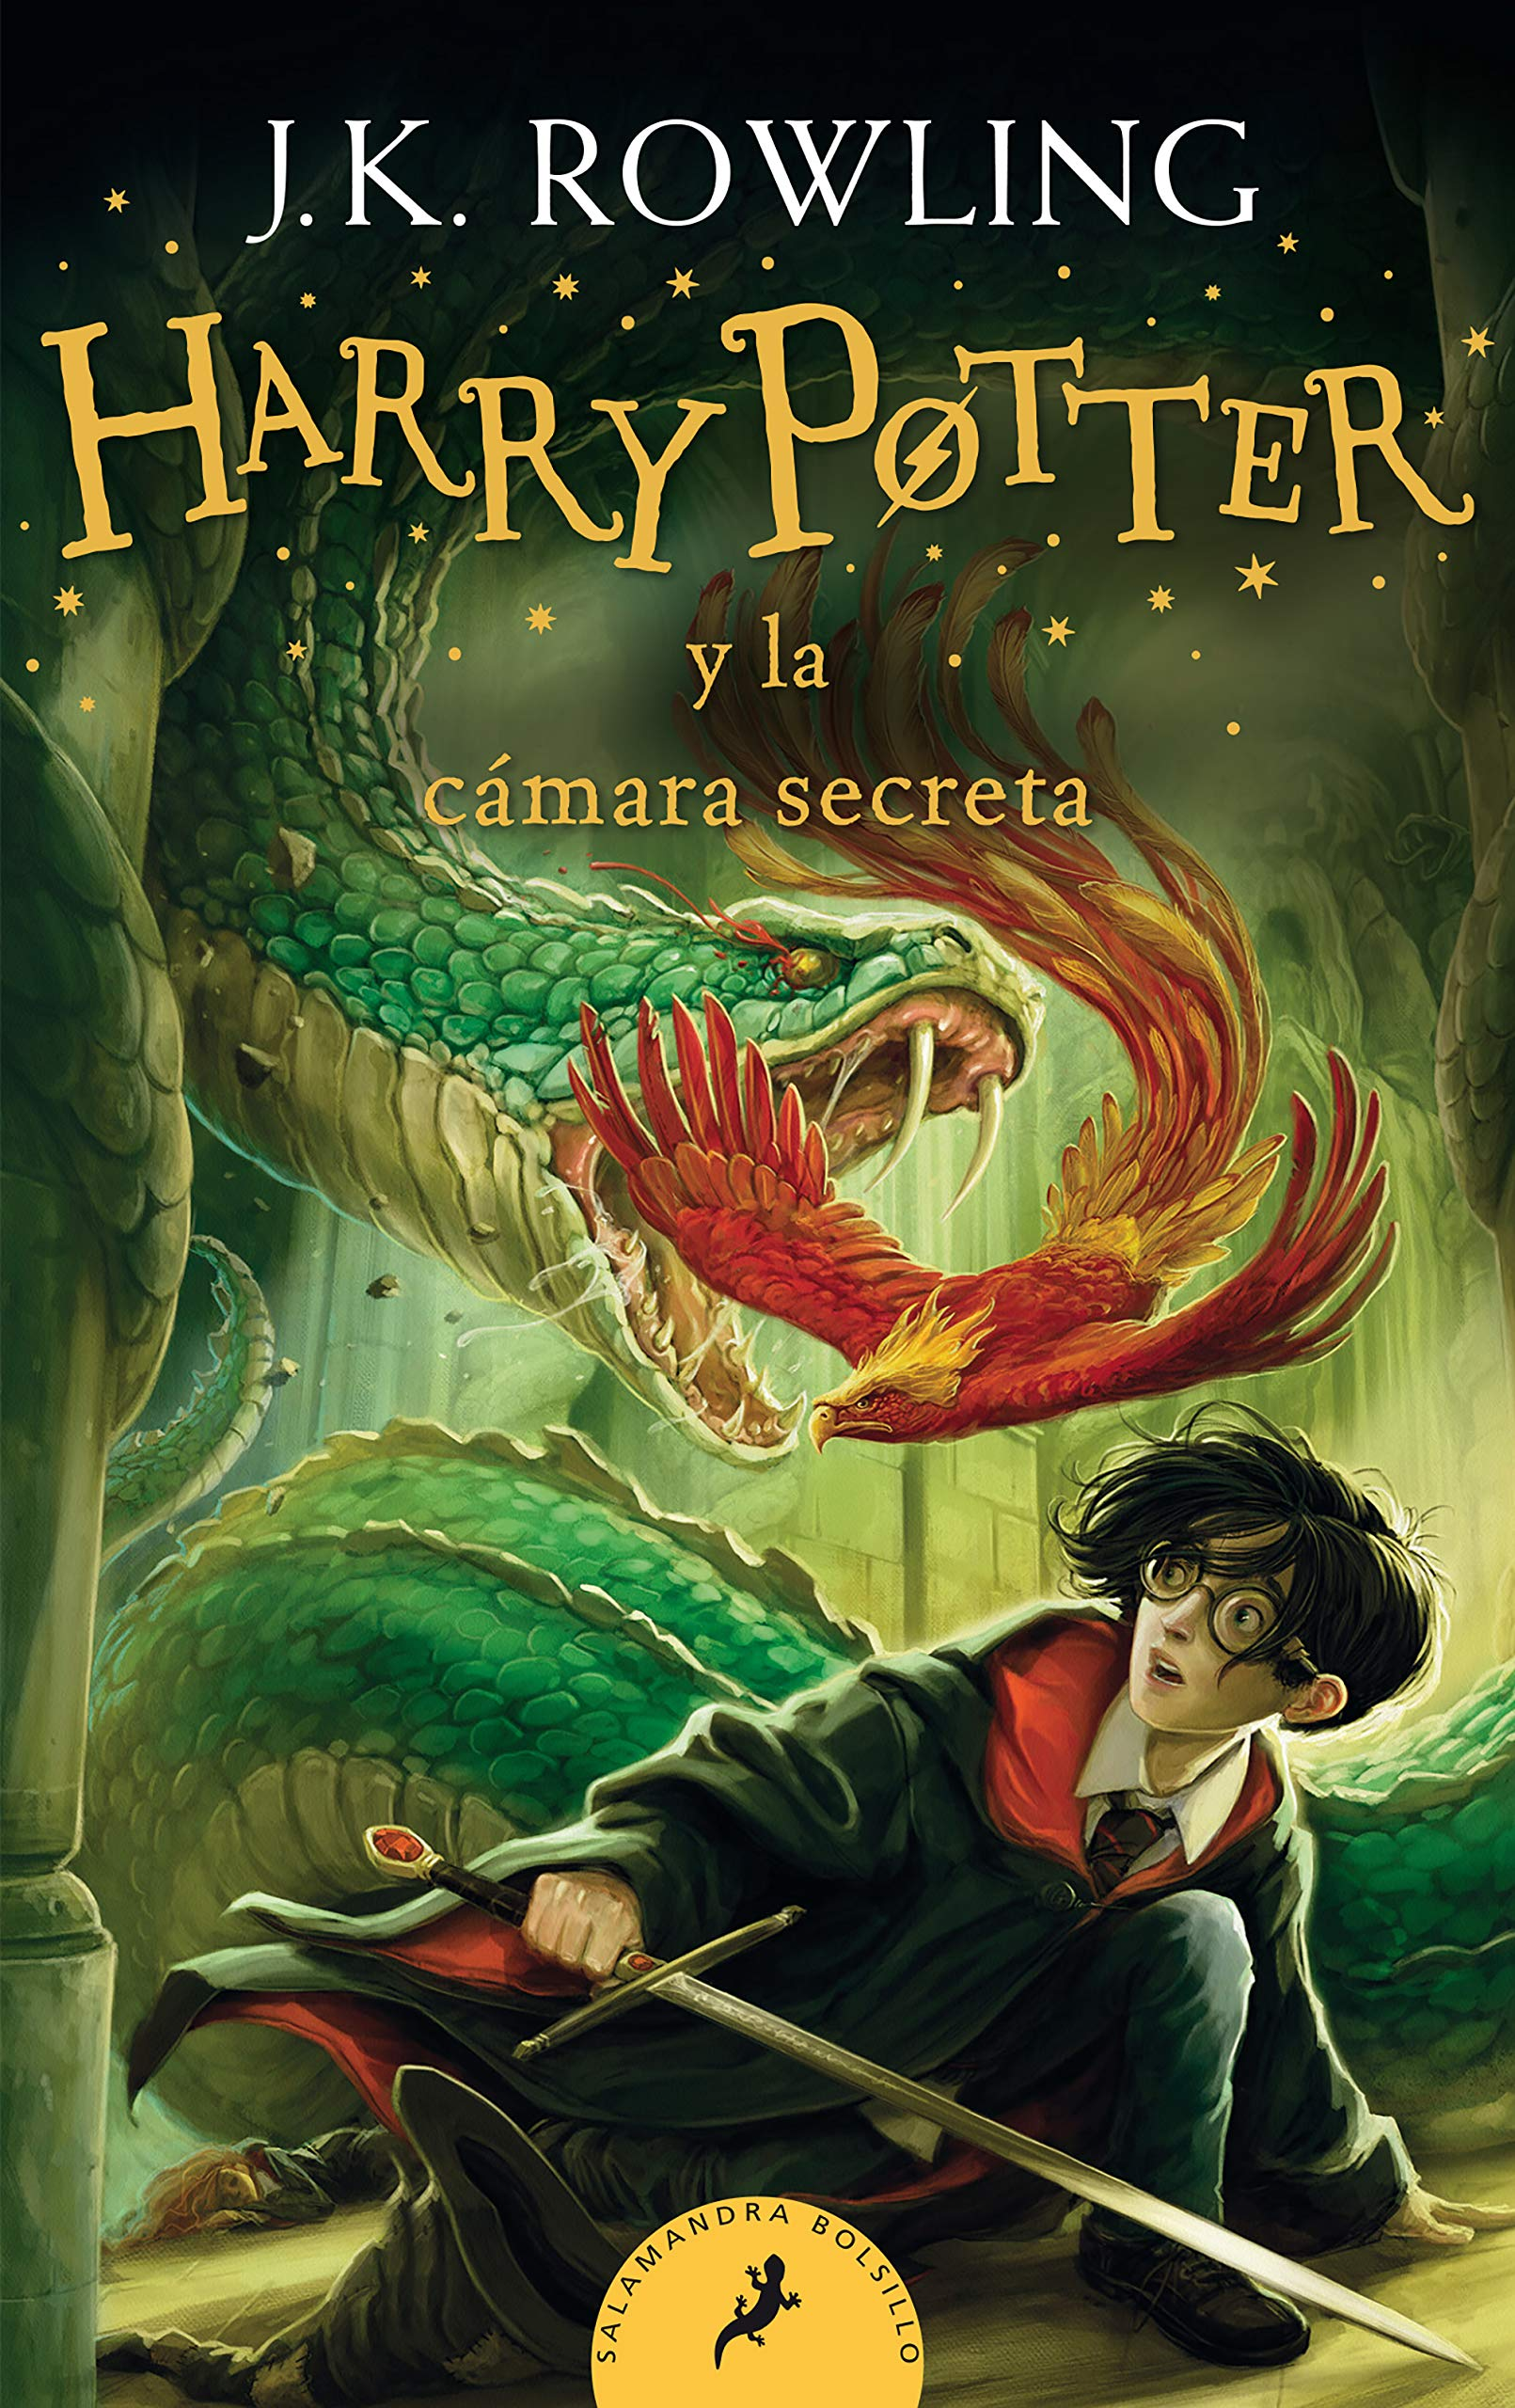 Harry Potter y la cámara secreta (Harry Potter 2): Amazon.es ...